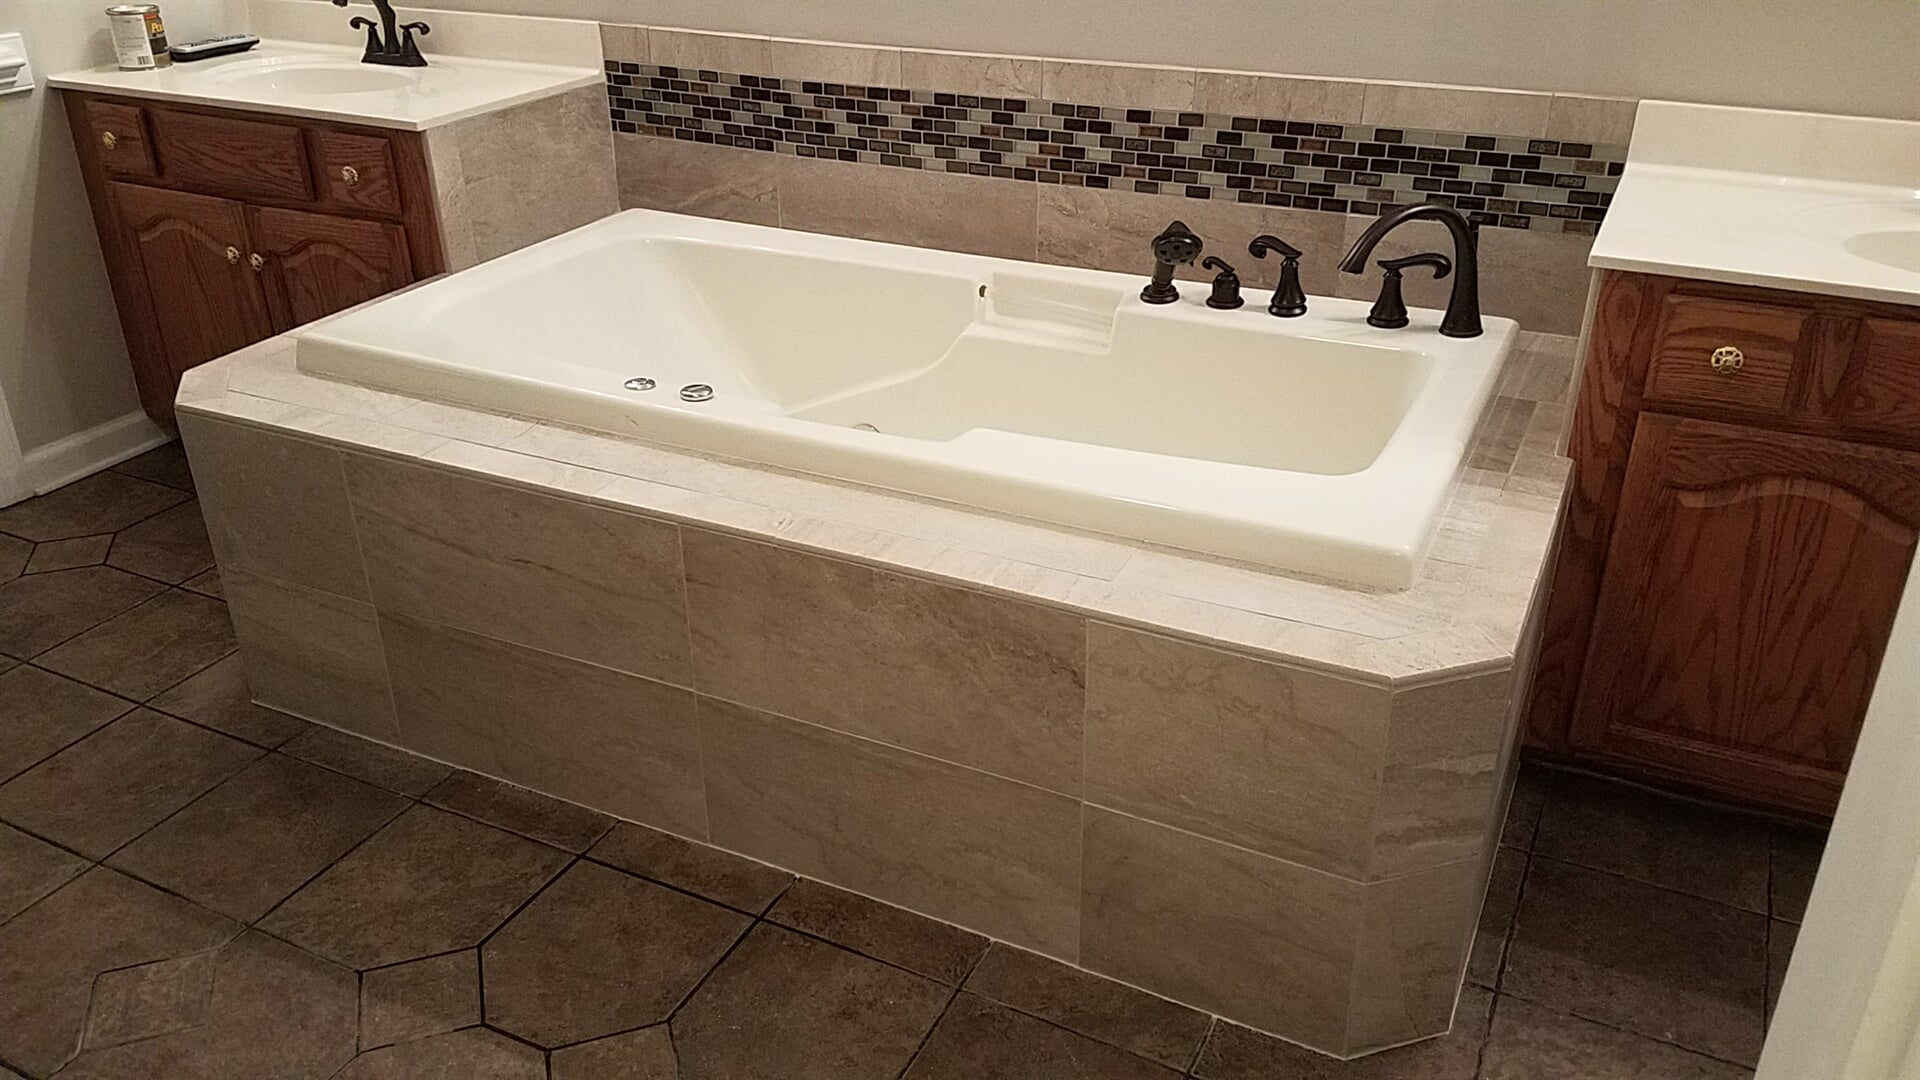 Tile tub surround in Statesville, NC from McLean Floorcoverings